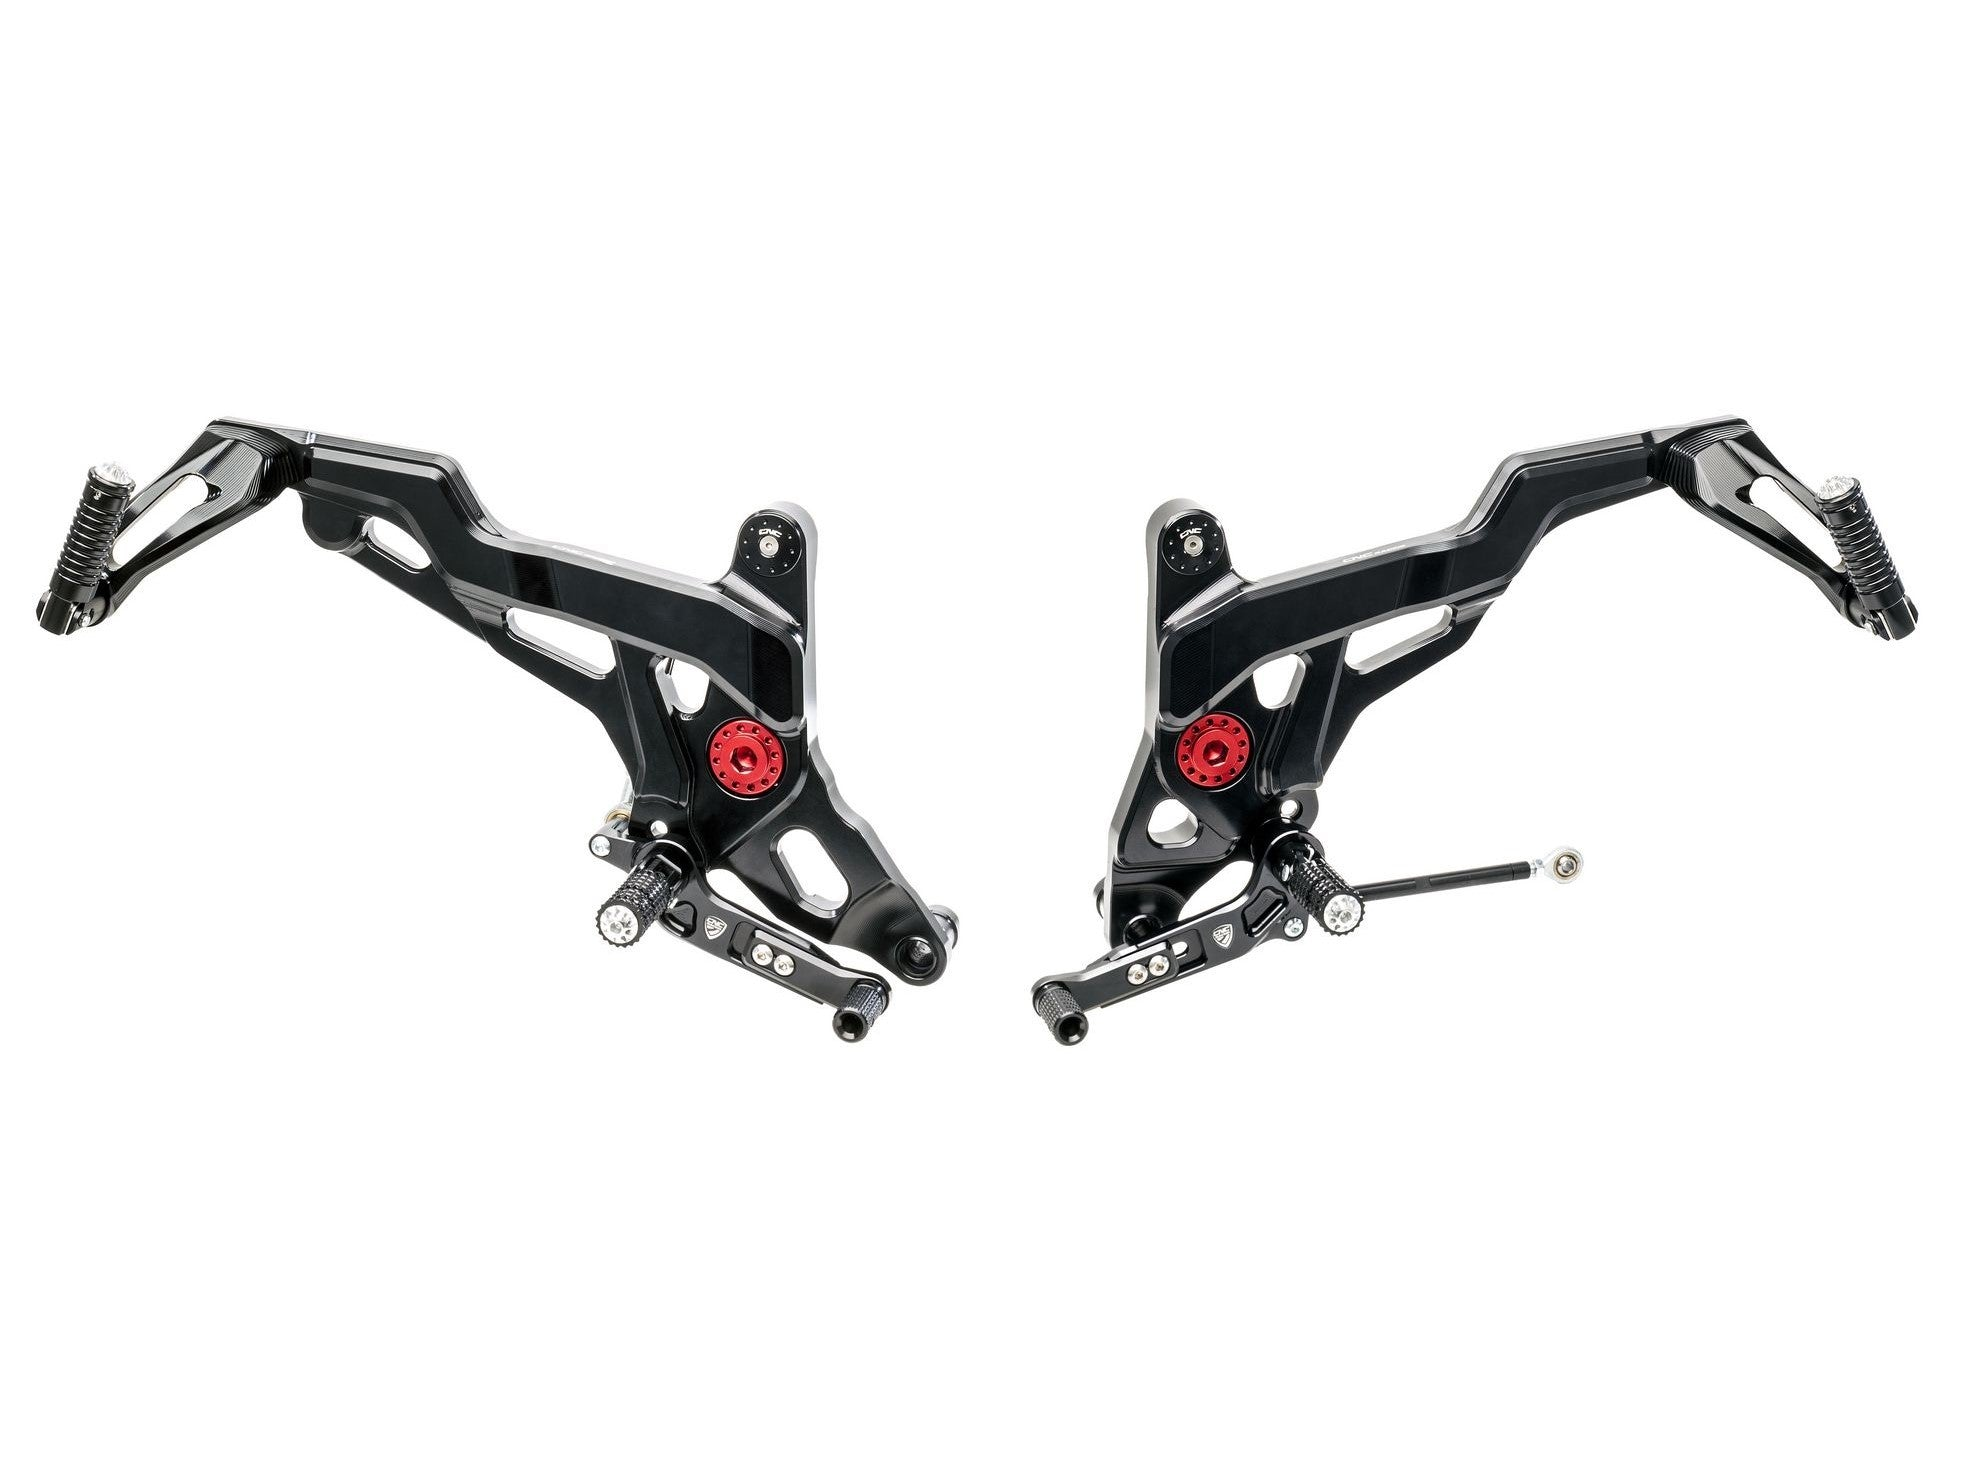 CNC RACING Ducati Monster 1200 / 821 Adjustable Rearset